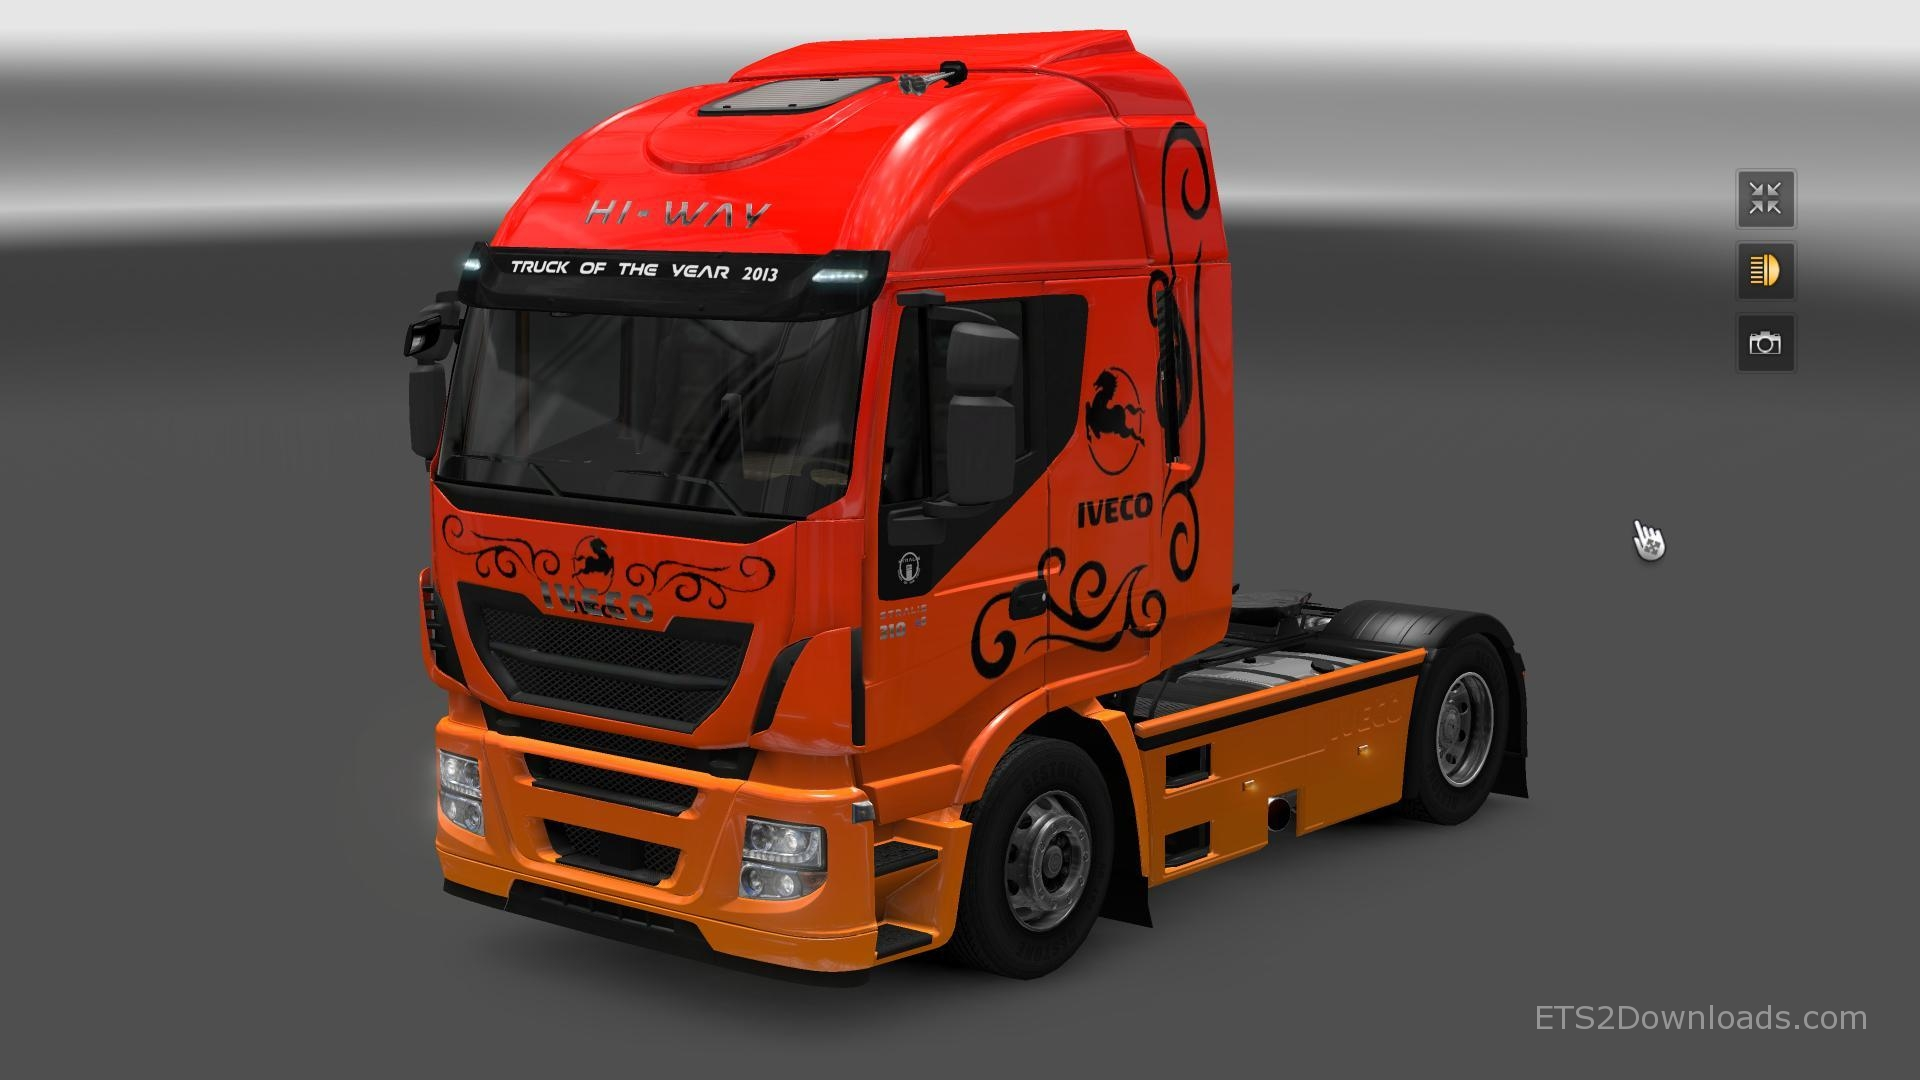 fresh-skin-for-iveco-hi-way-1